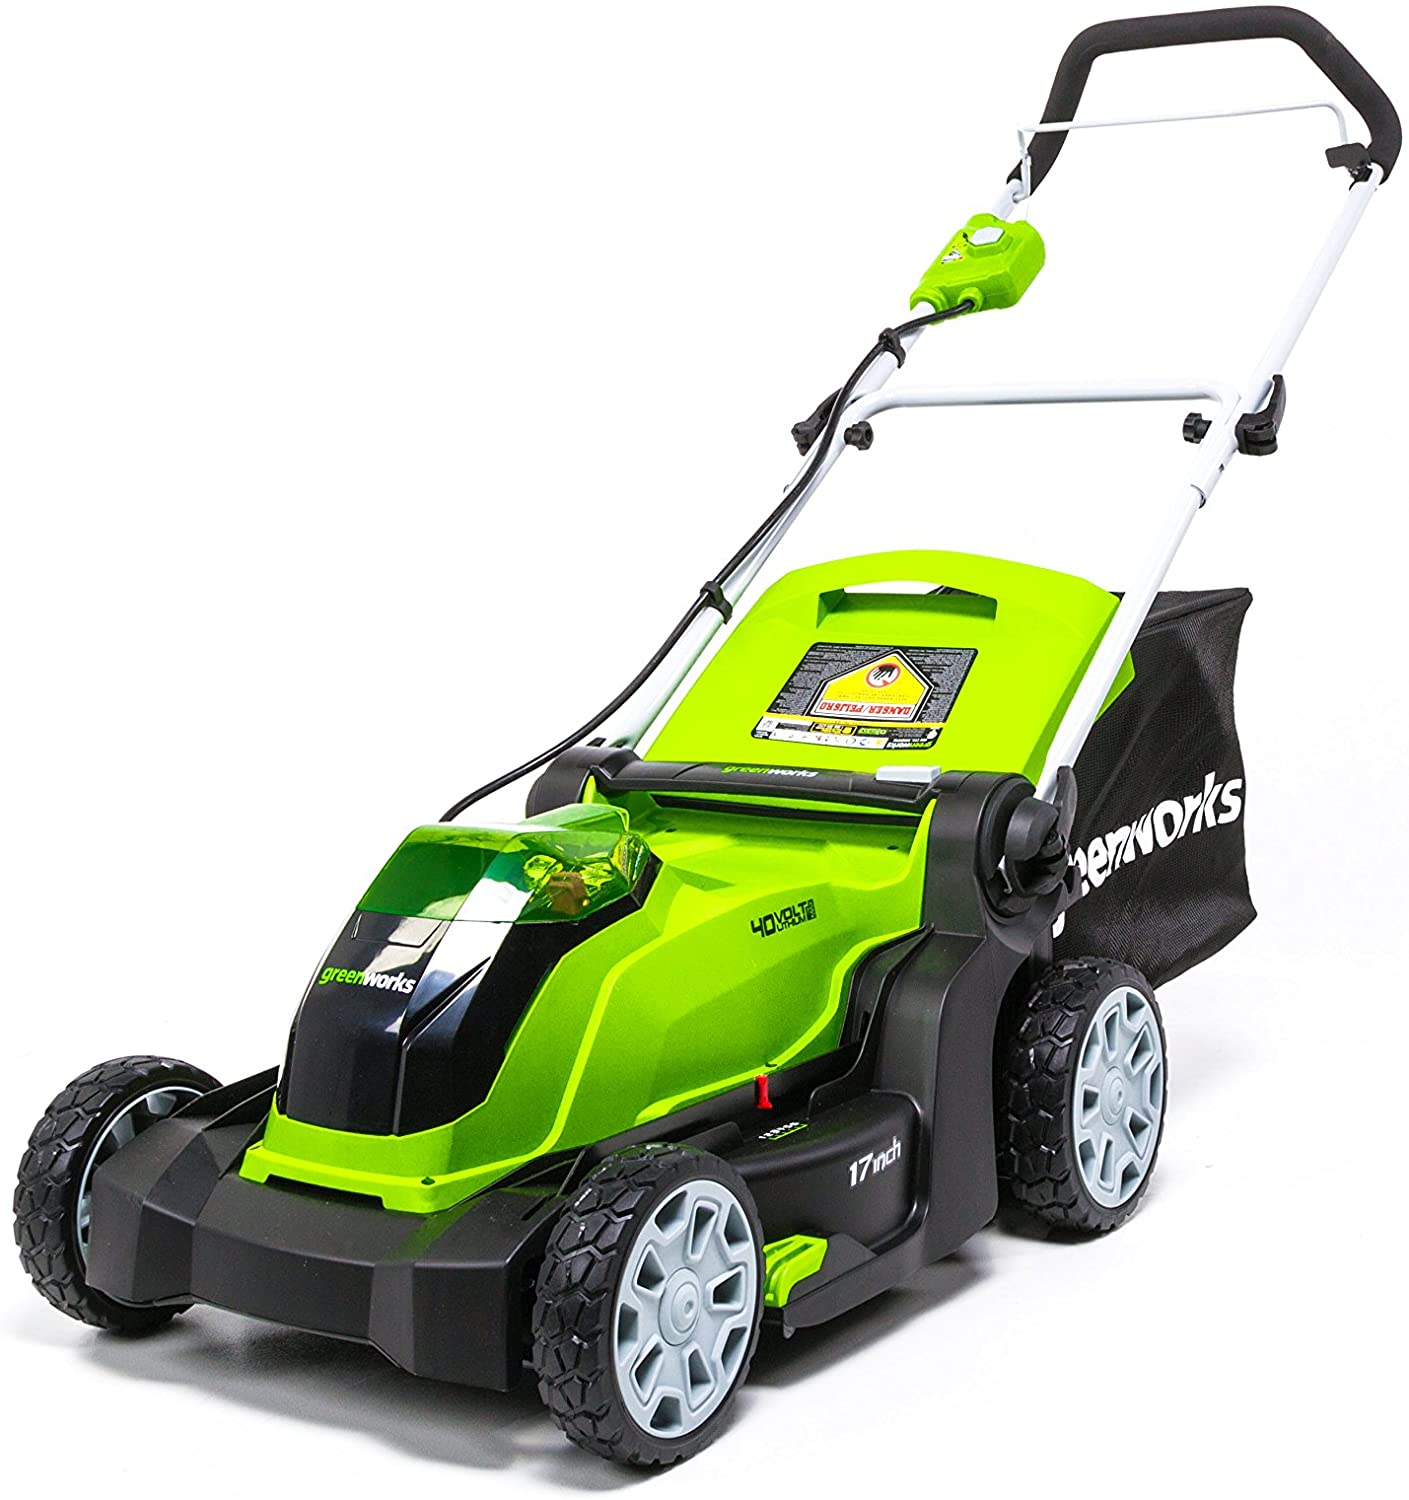 Best cordless mowers:  Greenworks 17-Inch 40V Cordless Lawn Mower